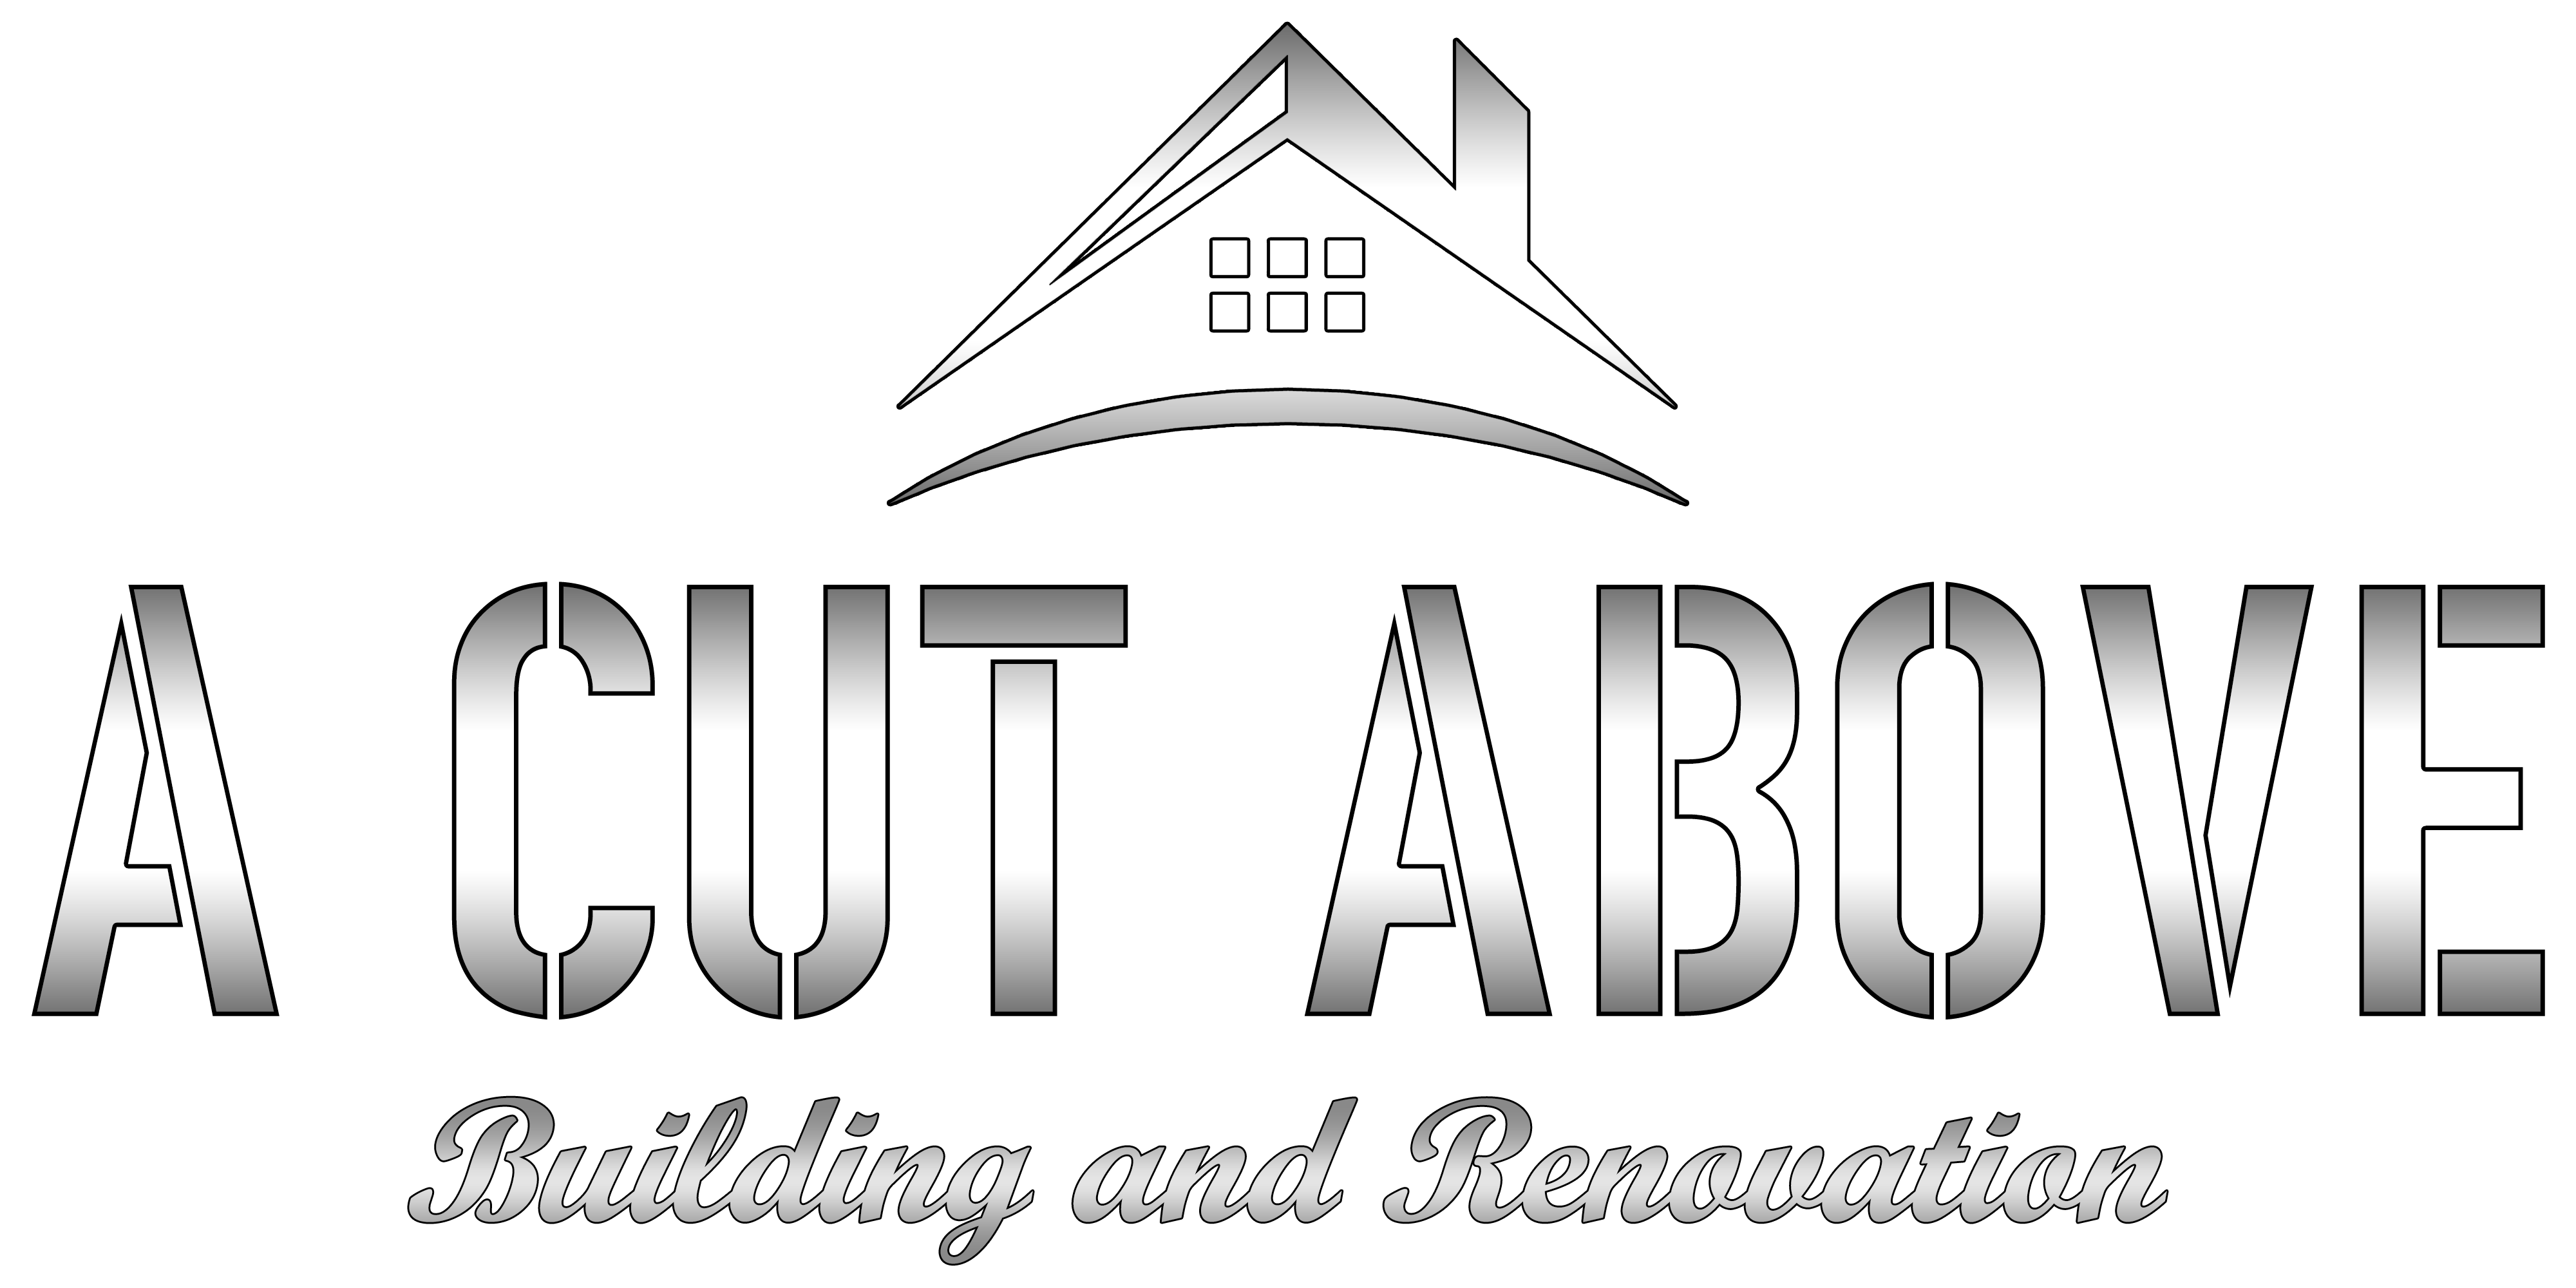 A Cut Above Building & Renovation